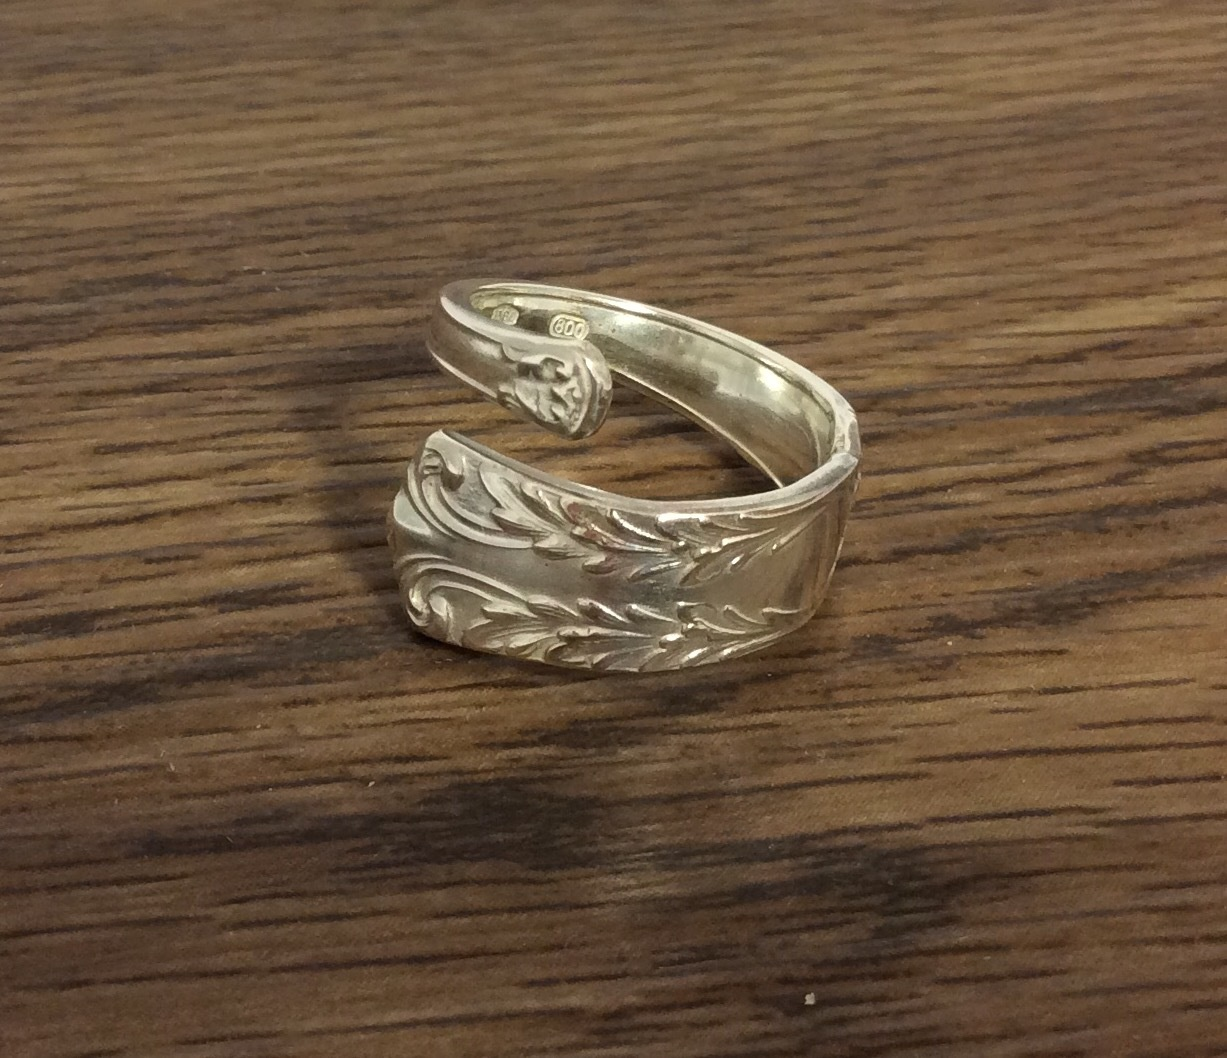 Vintage Italian Sterling Silver Spoon ring - Size O